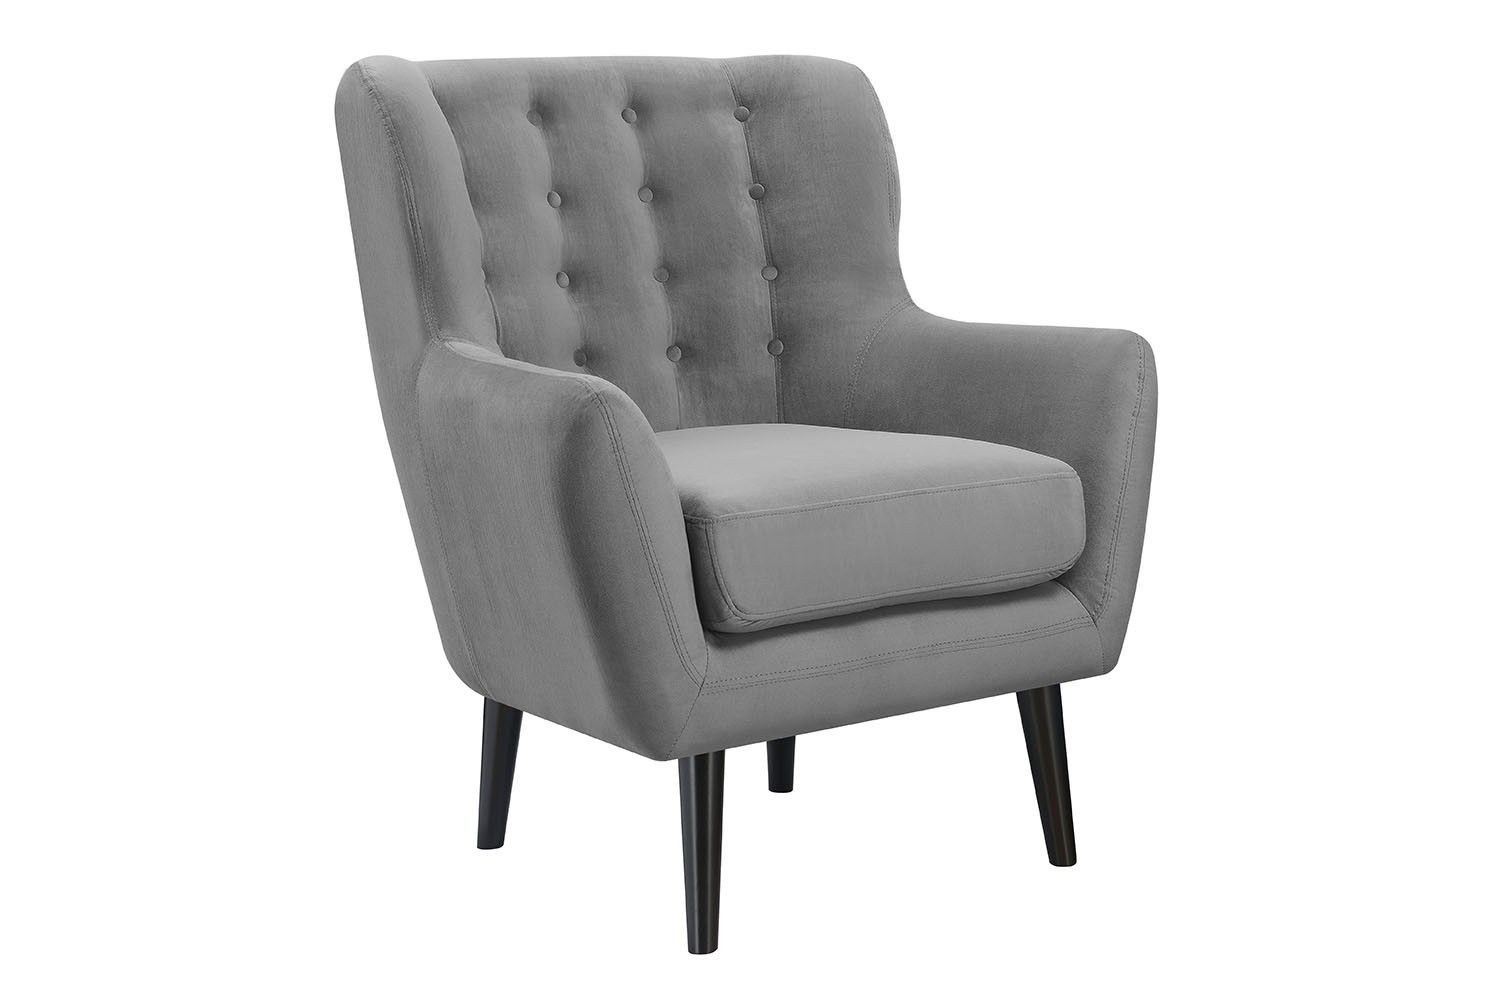 Lucy Gray Accent Chair | New Year's Sale On 500+ Products Inside Lucy Grey Sofa Chairs (Image 9 of 25)